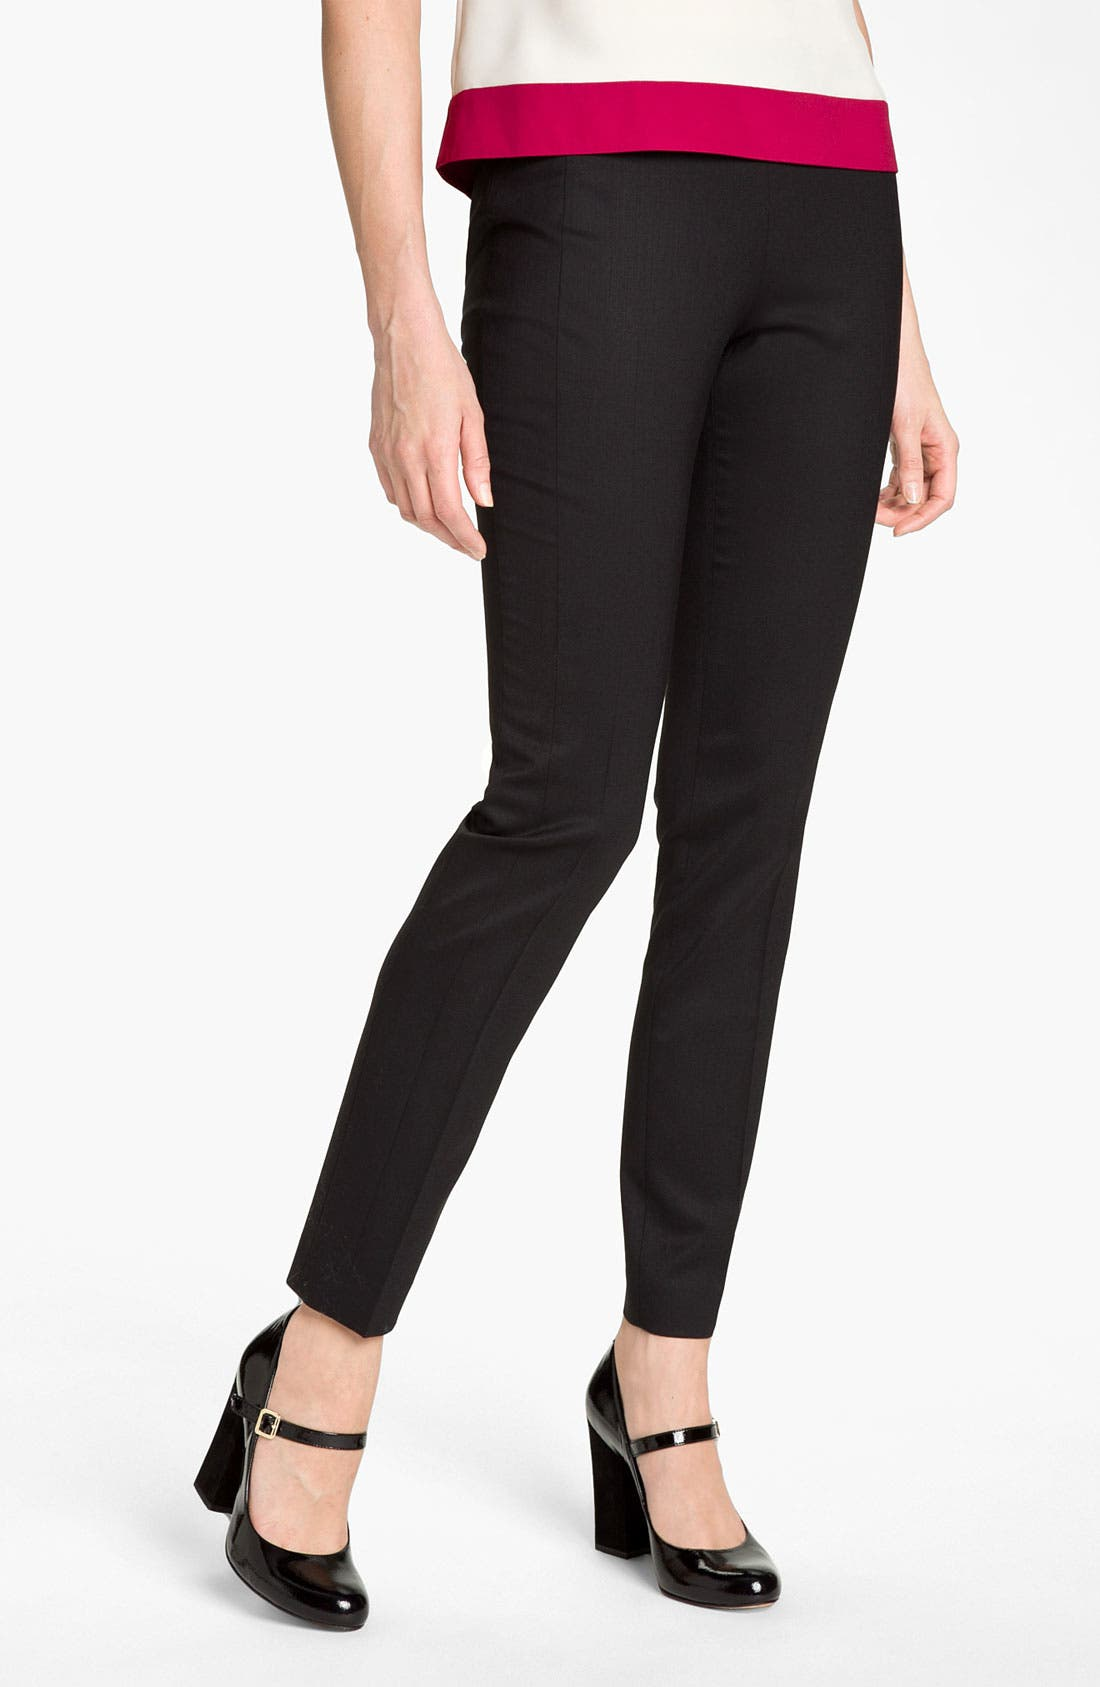 Alternate Image 1 Selected - Ted Baker London Skinny Leg Pants